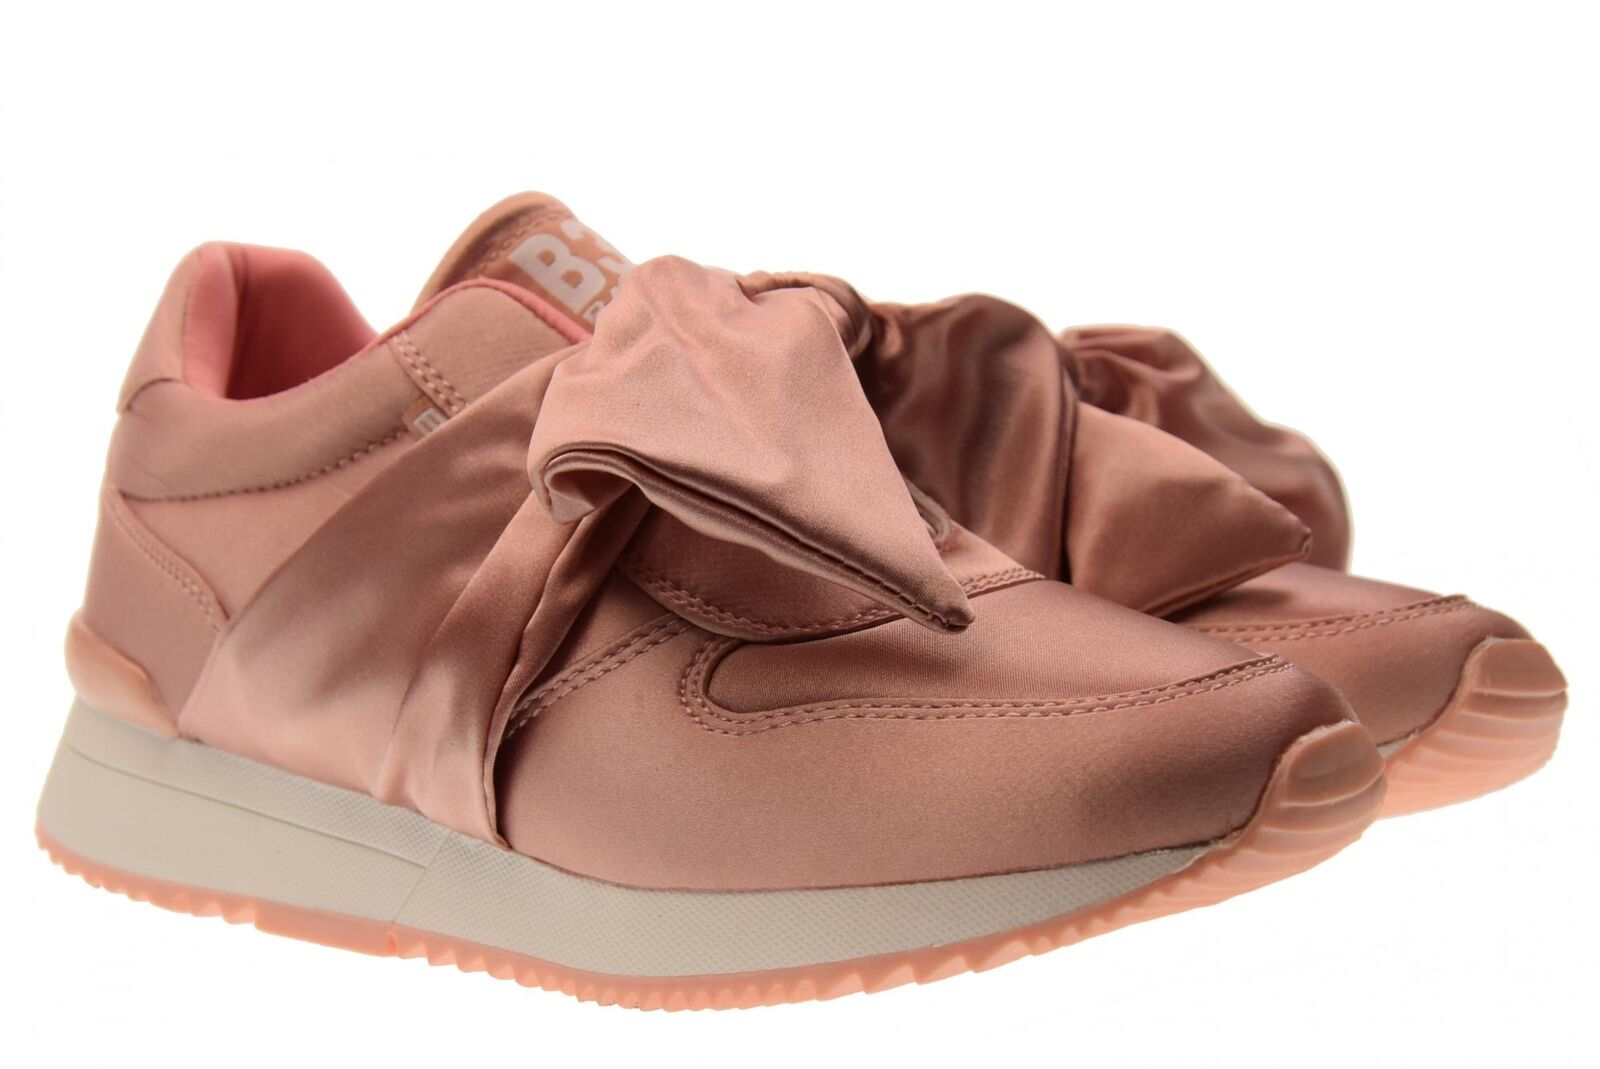 B3D Chaussures P18f chaussures femme baskets basses 41434 Rose